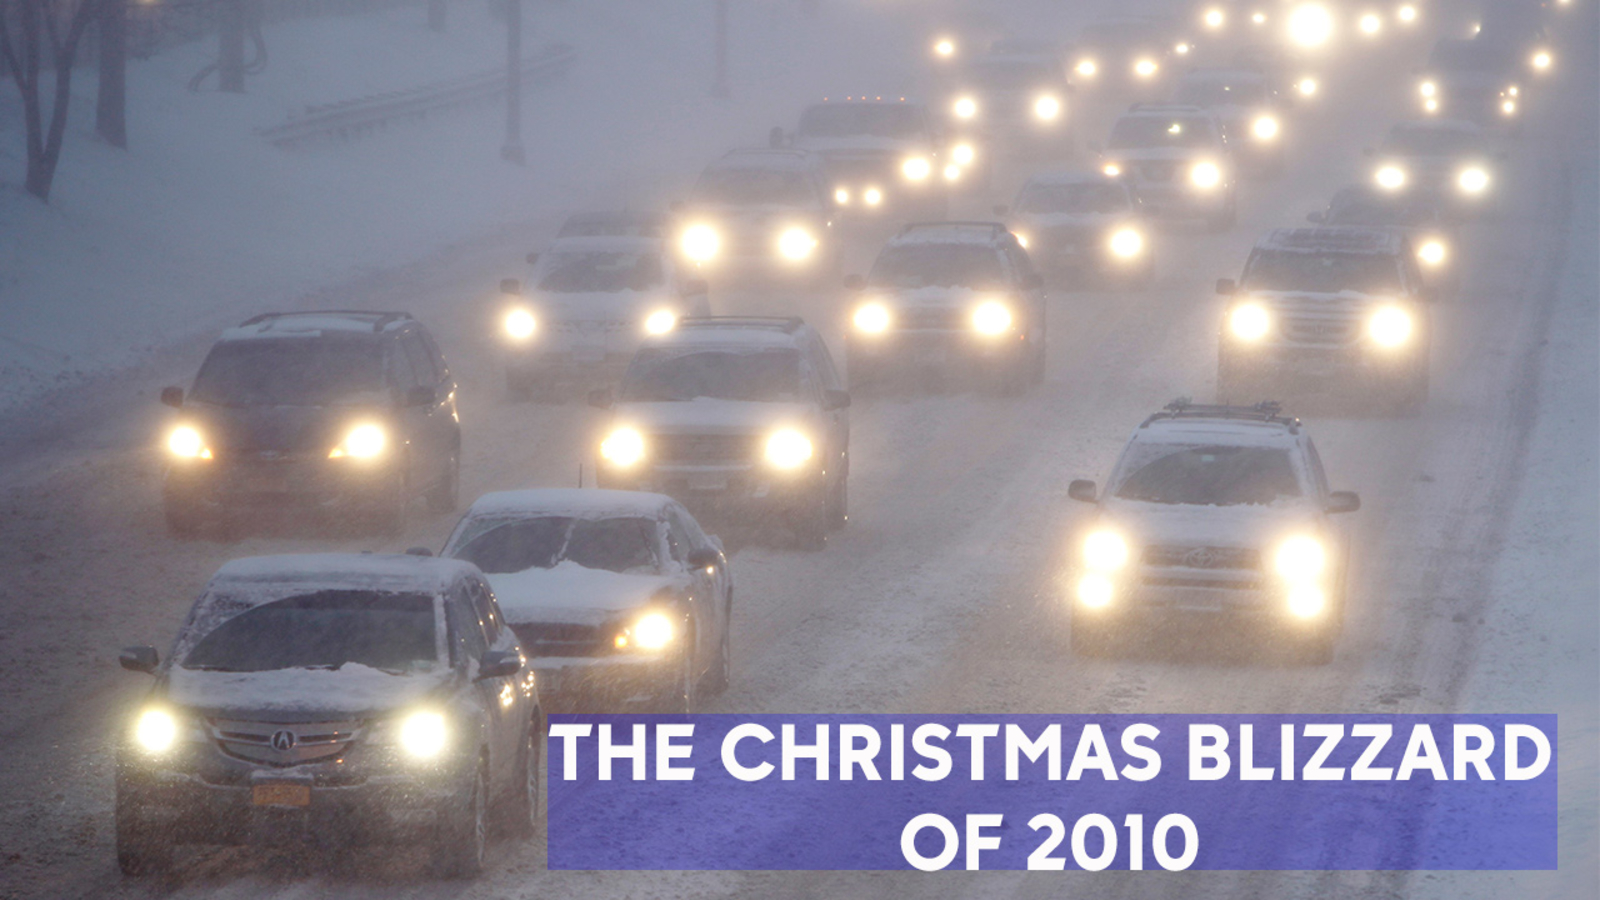 Remembering NYC's Christmas blizzard of 2010